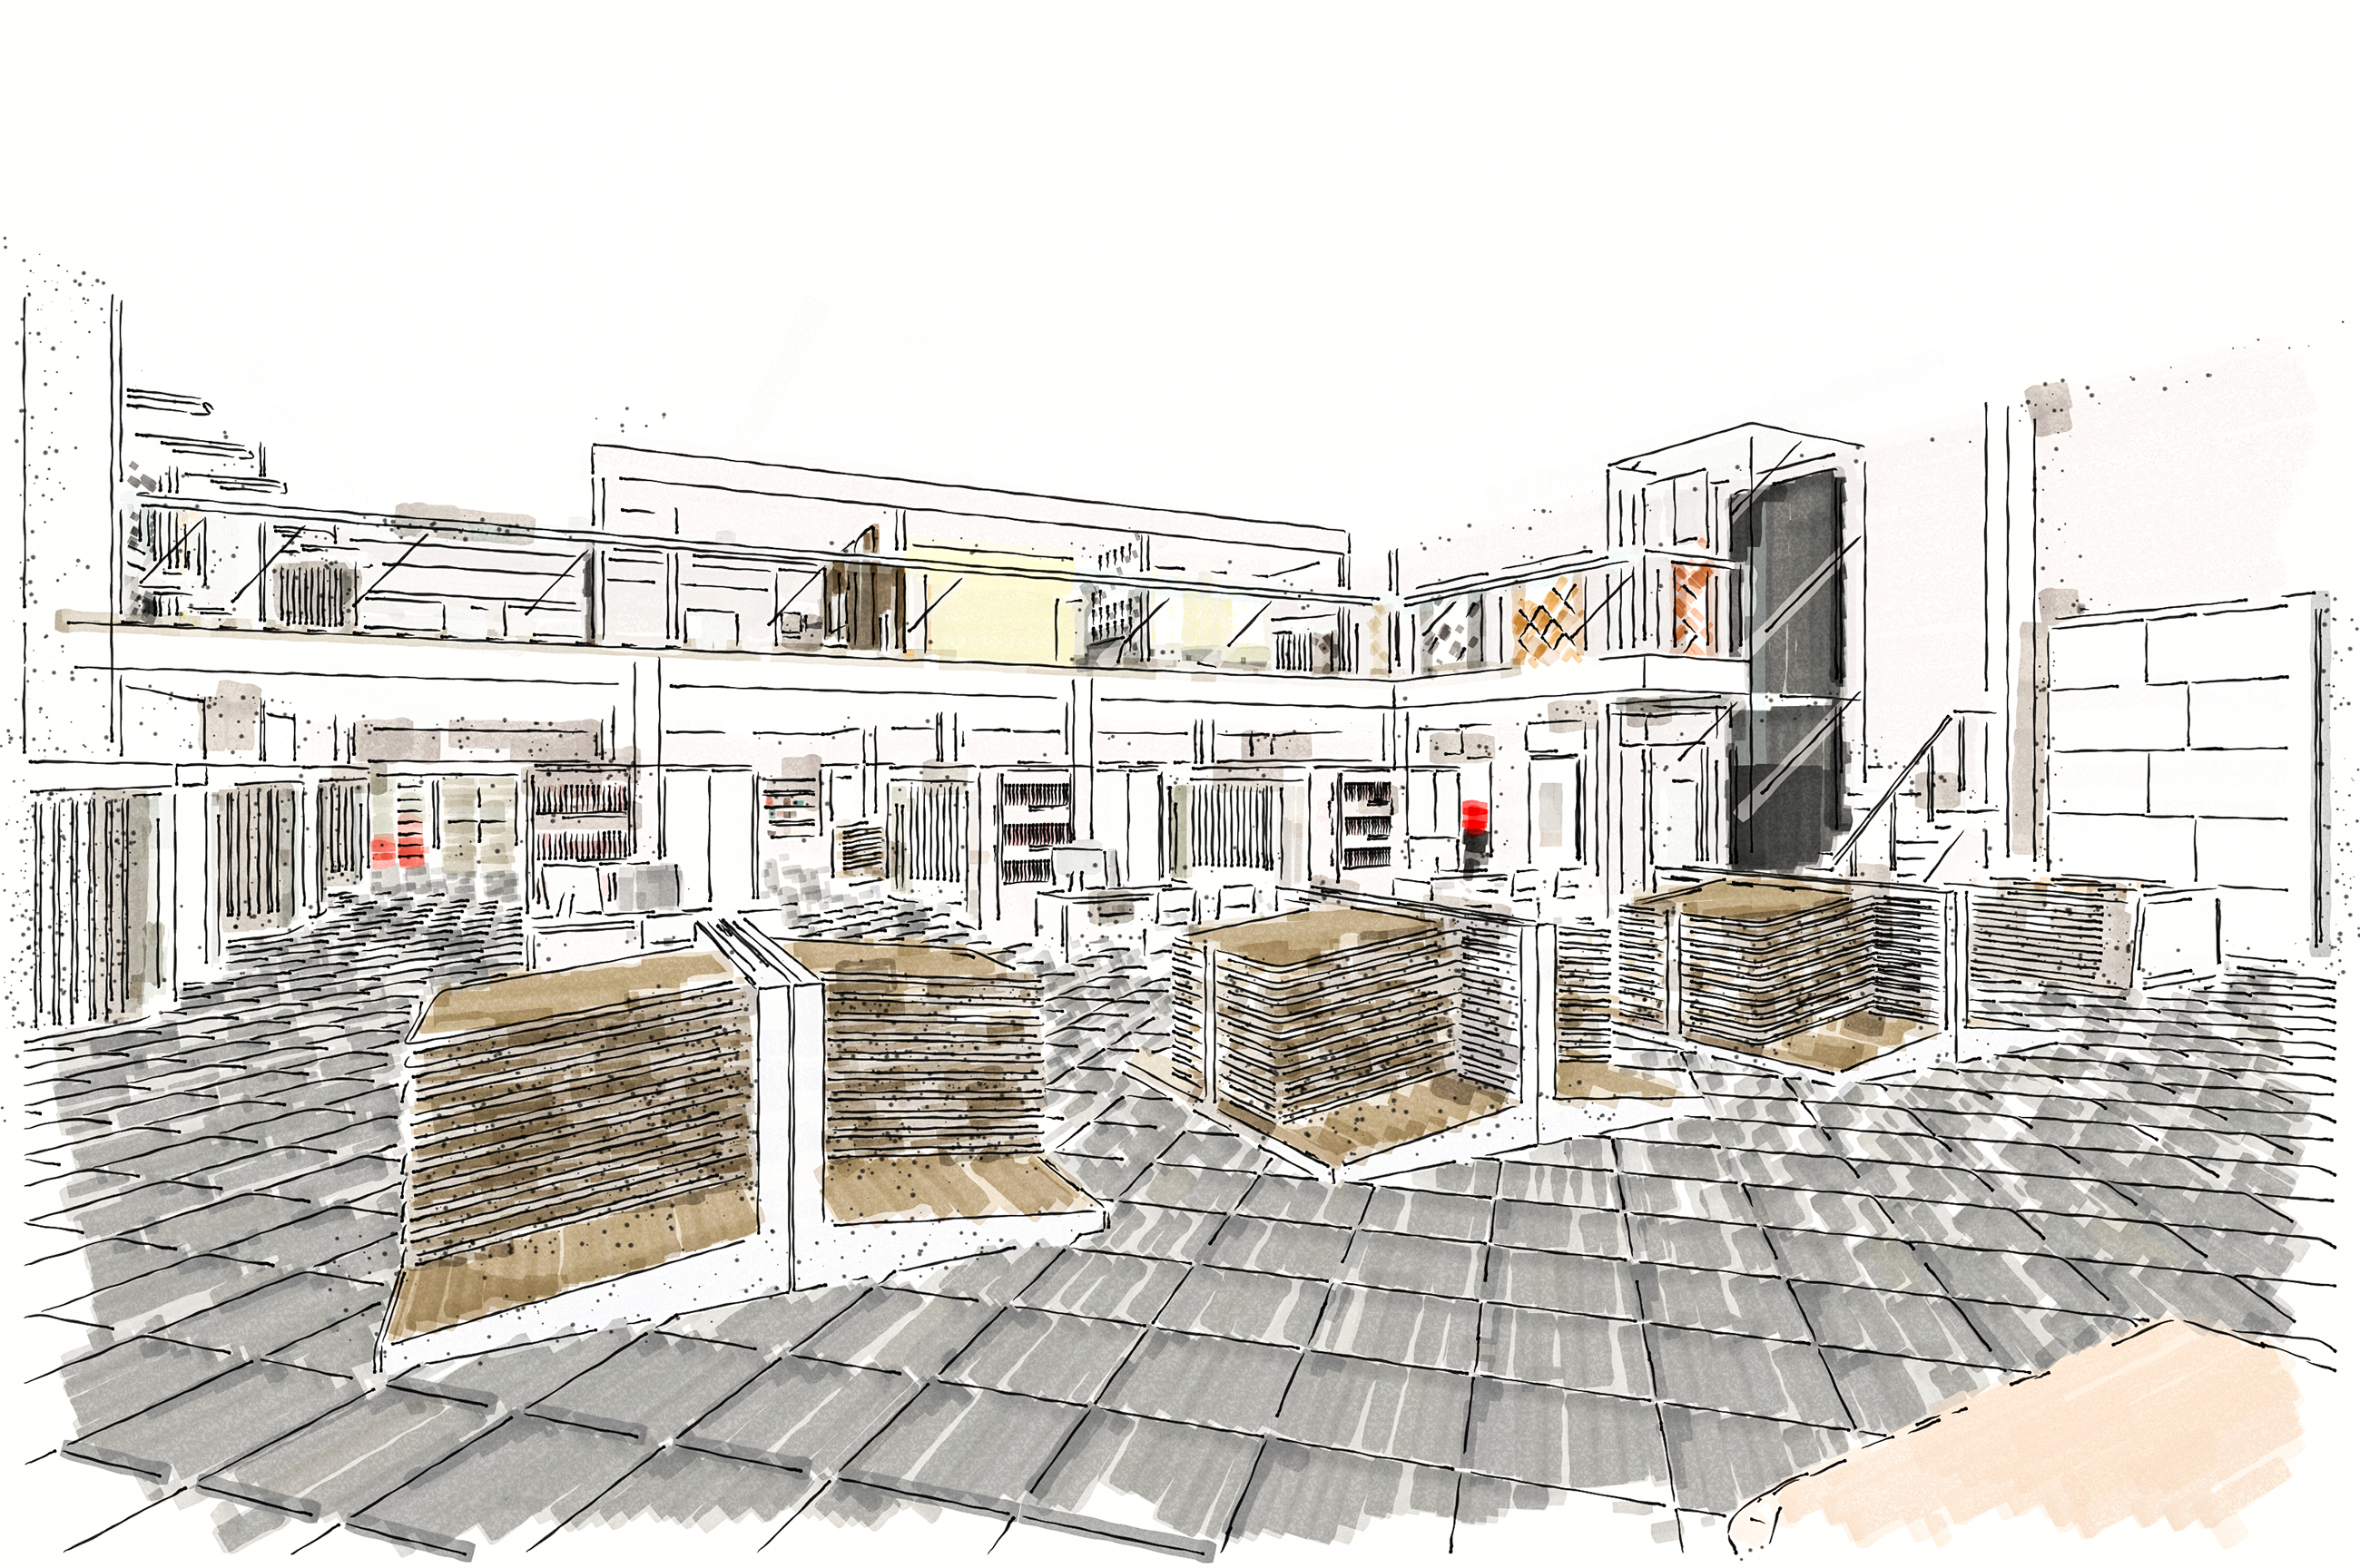 Flagship Tile Mountain showroom interior design drawing